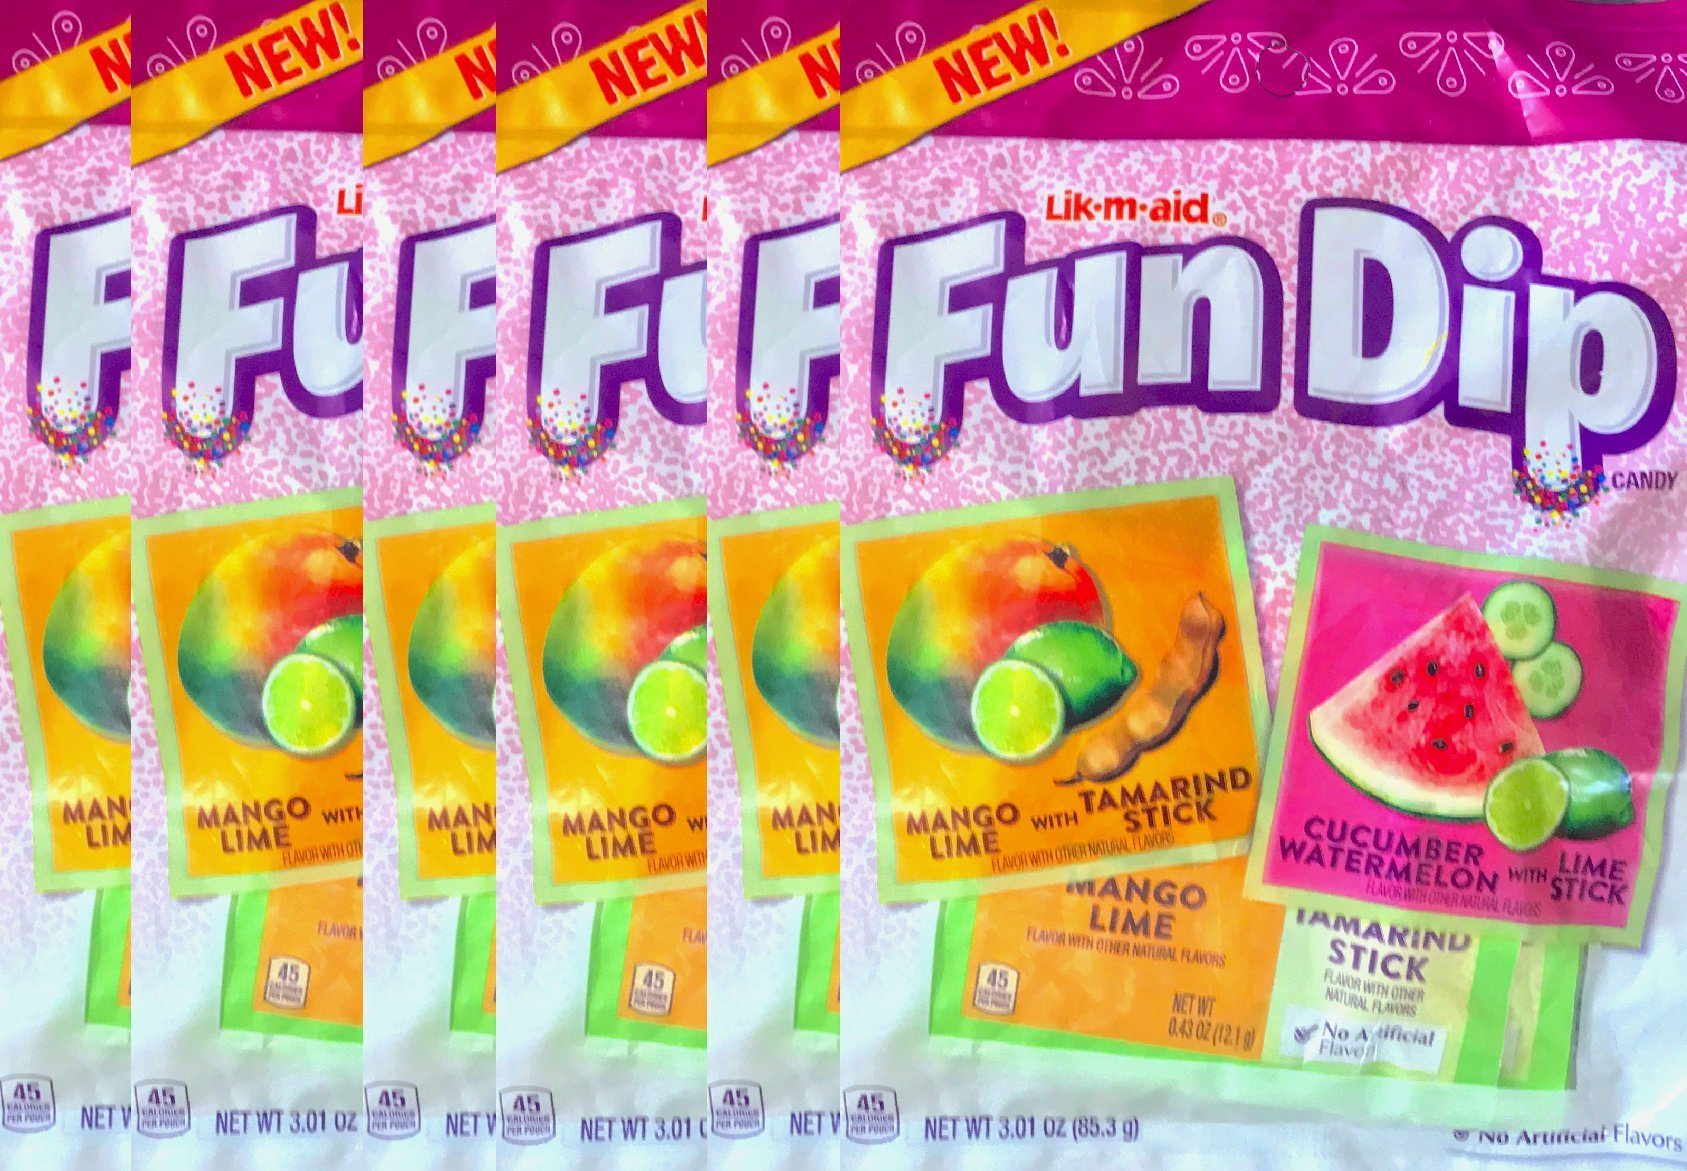 Fun Dip Candy Mango Lime With Tamarindo Stick/Cucumber watermelon With Lime Stick Net Wt 3.01 Oz (6)